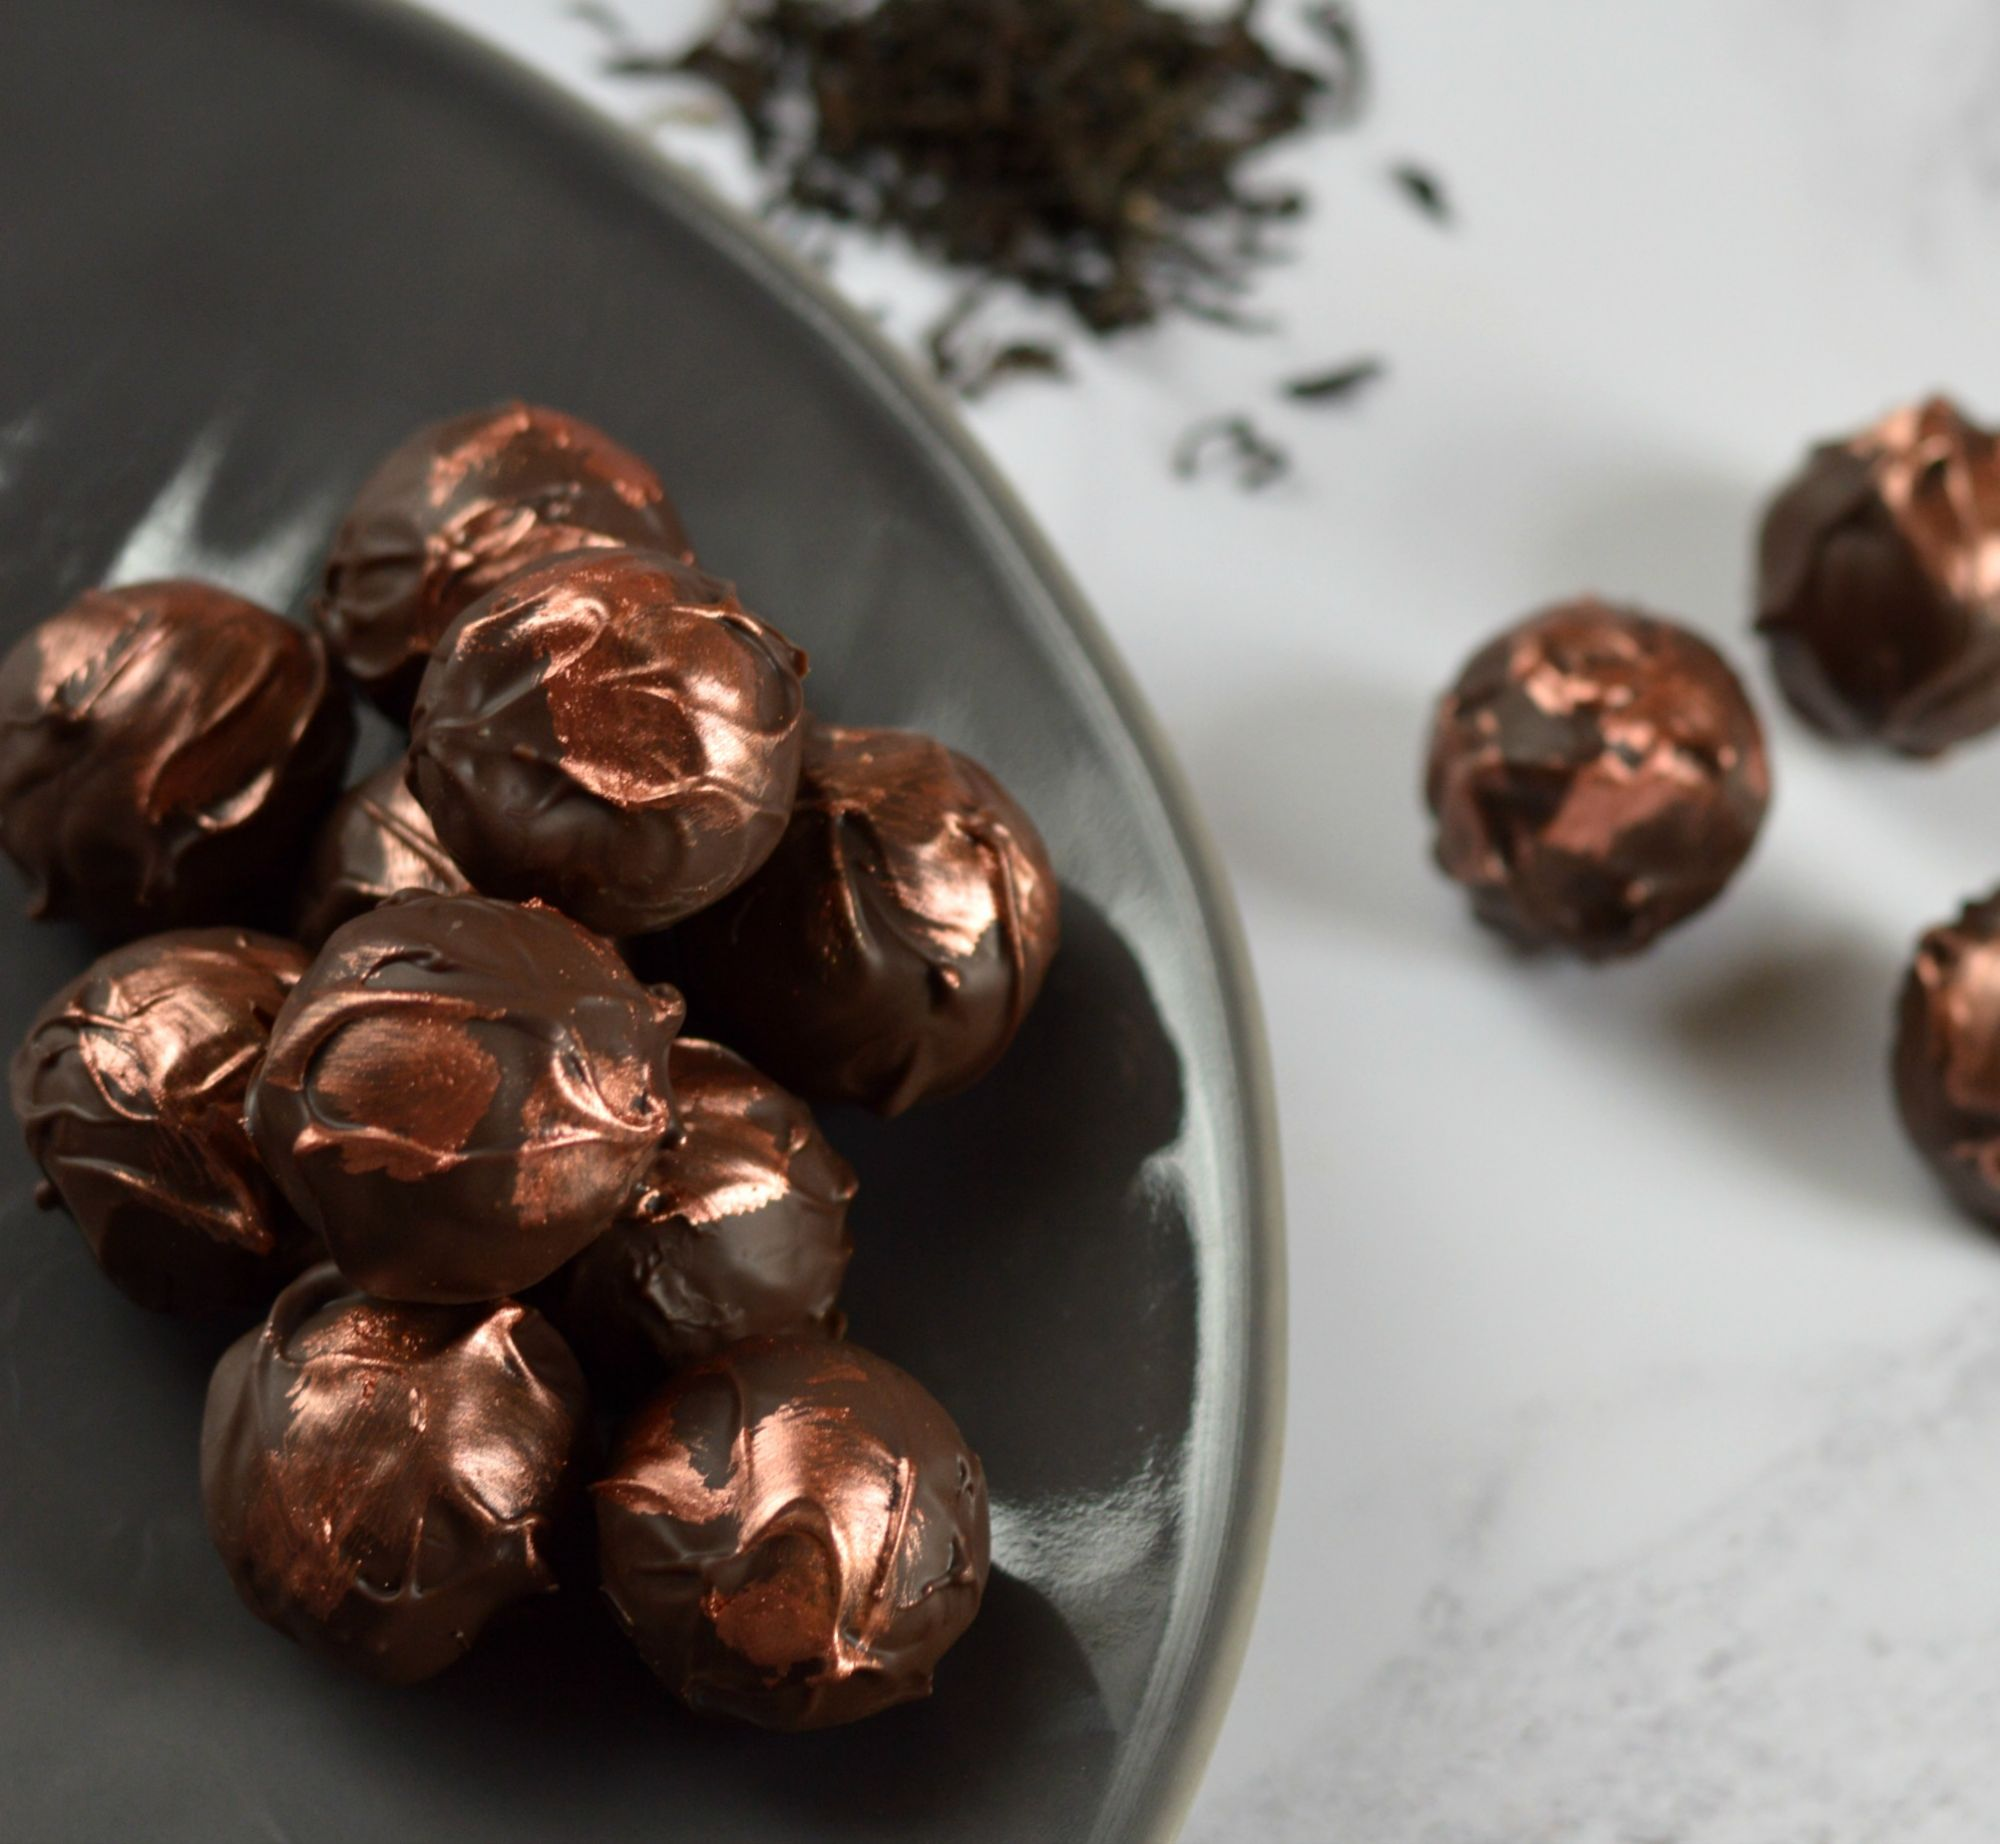 Chocolate Truffle Making Course